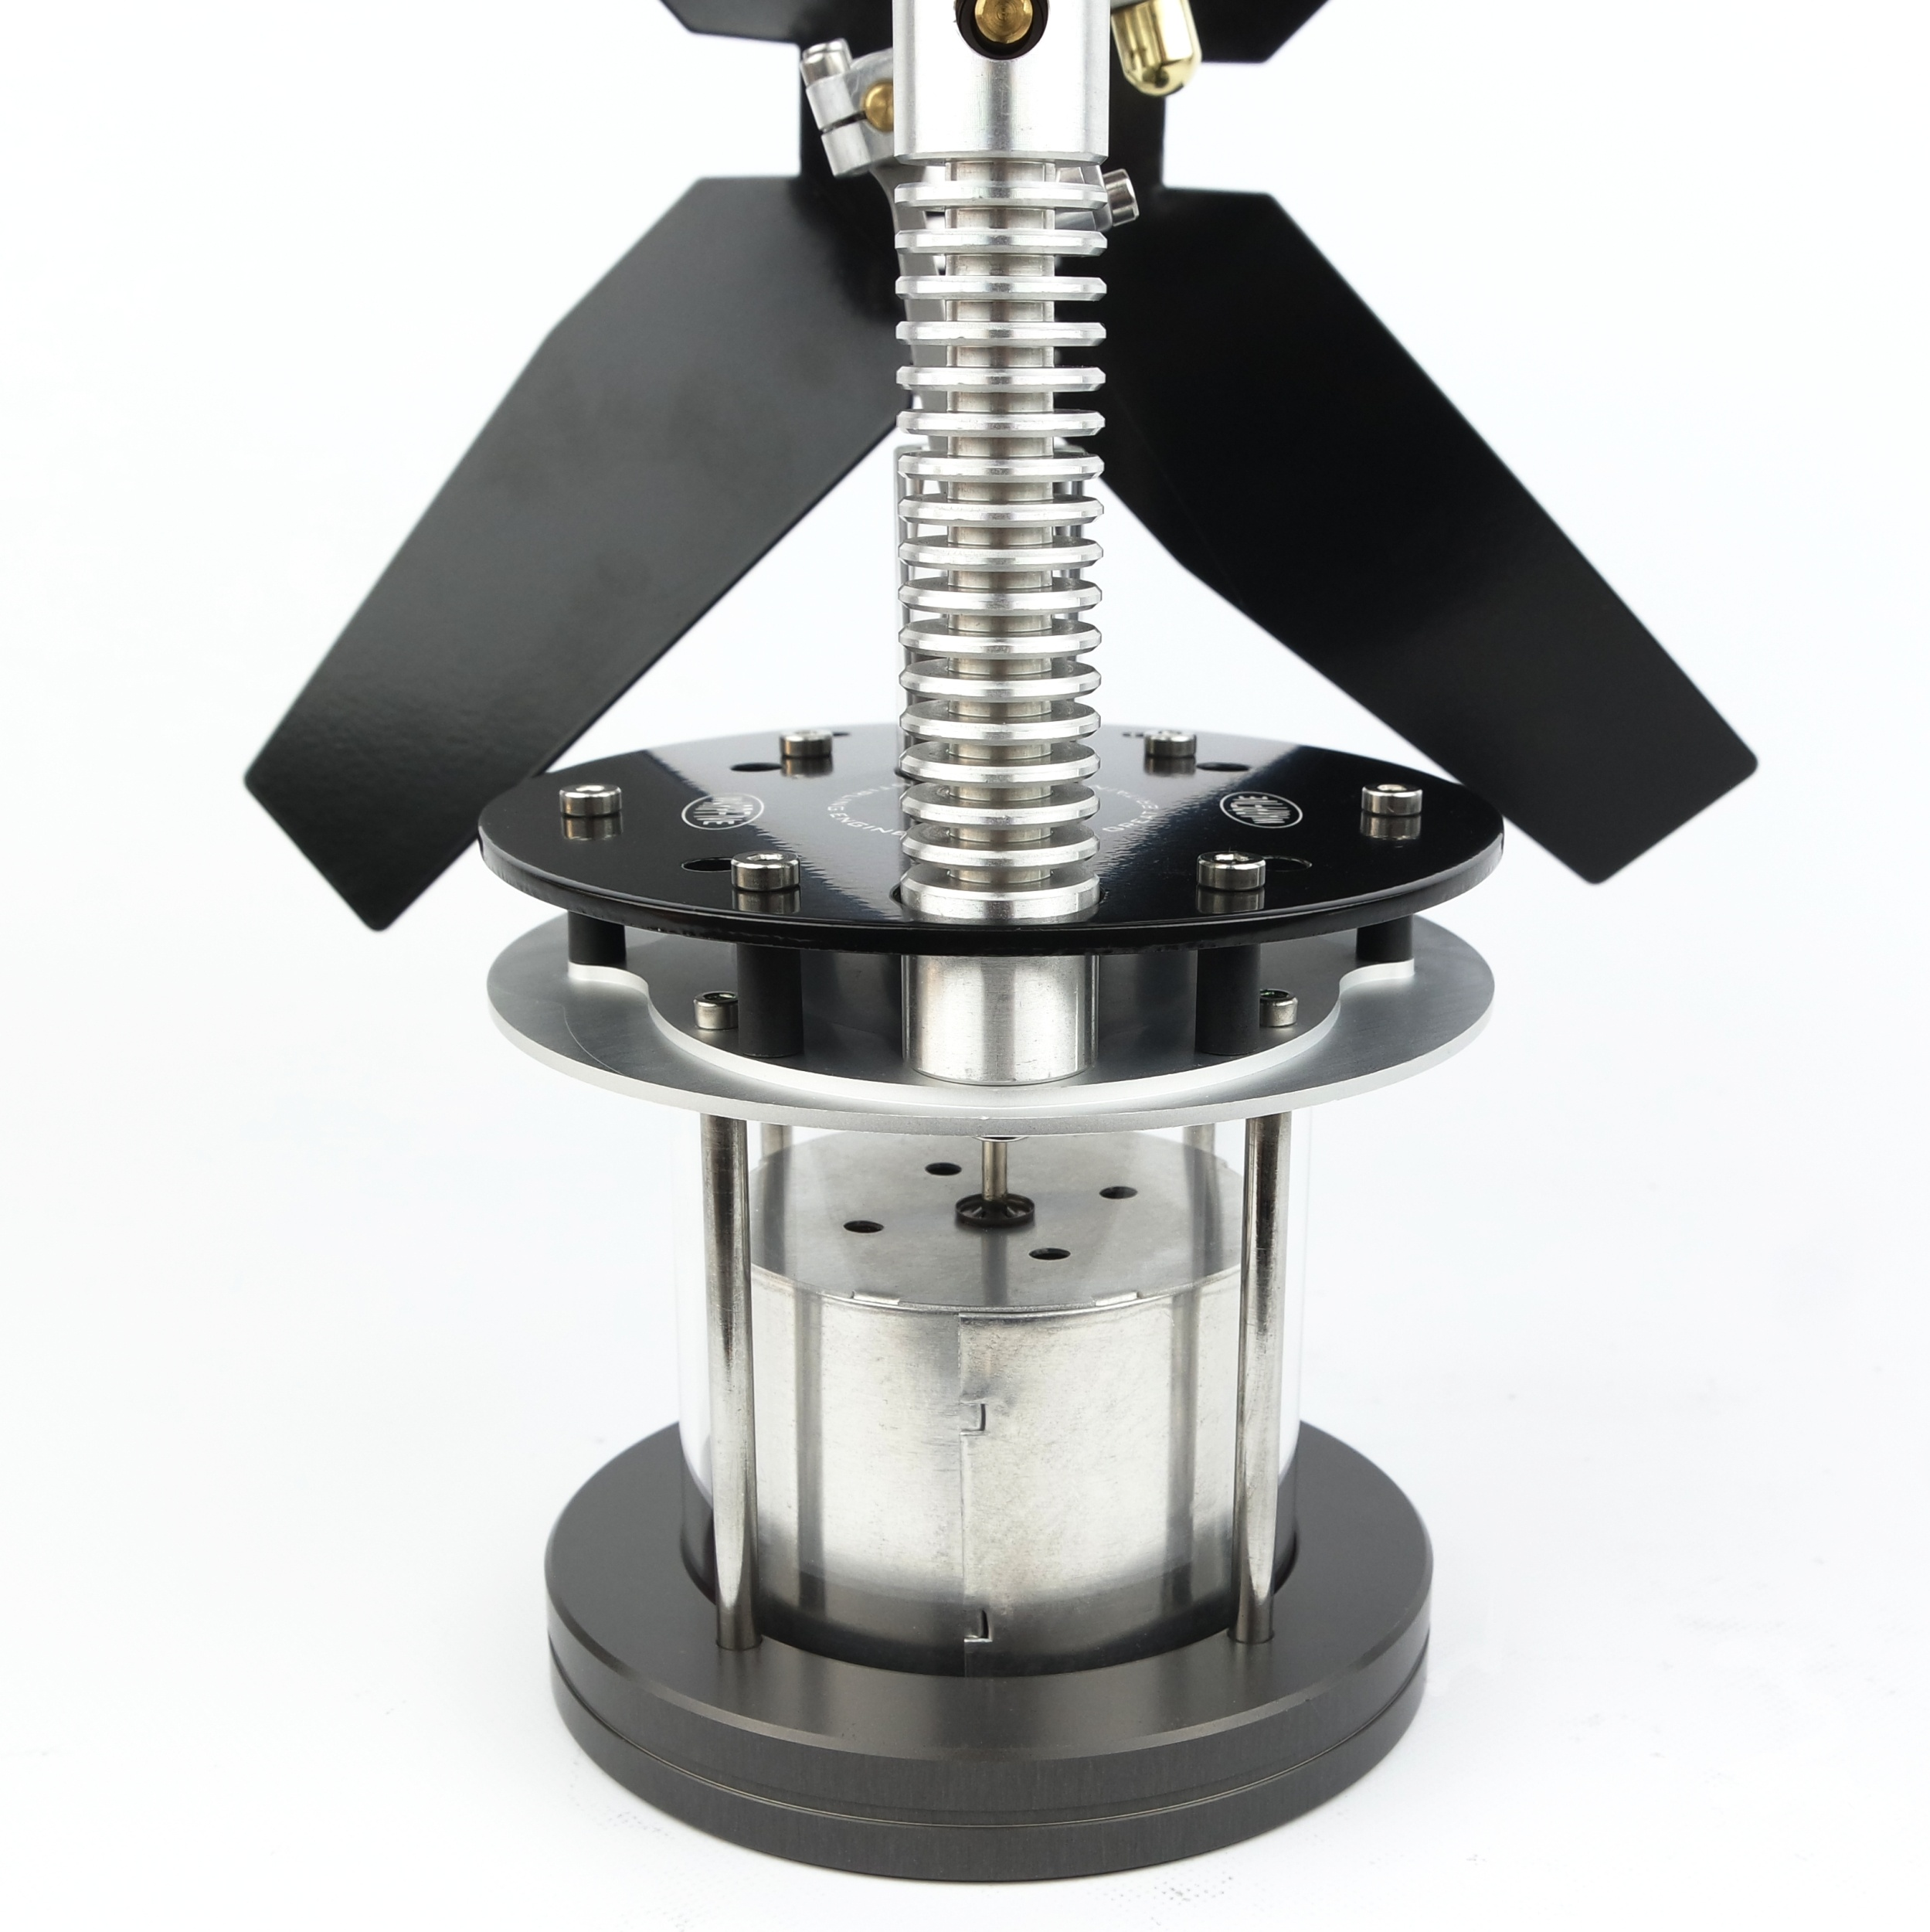 Clear glass cylinder shows working displacer in the Glasshopper Stove Fan